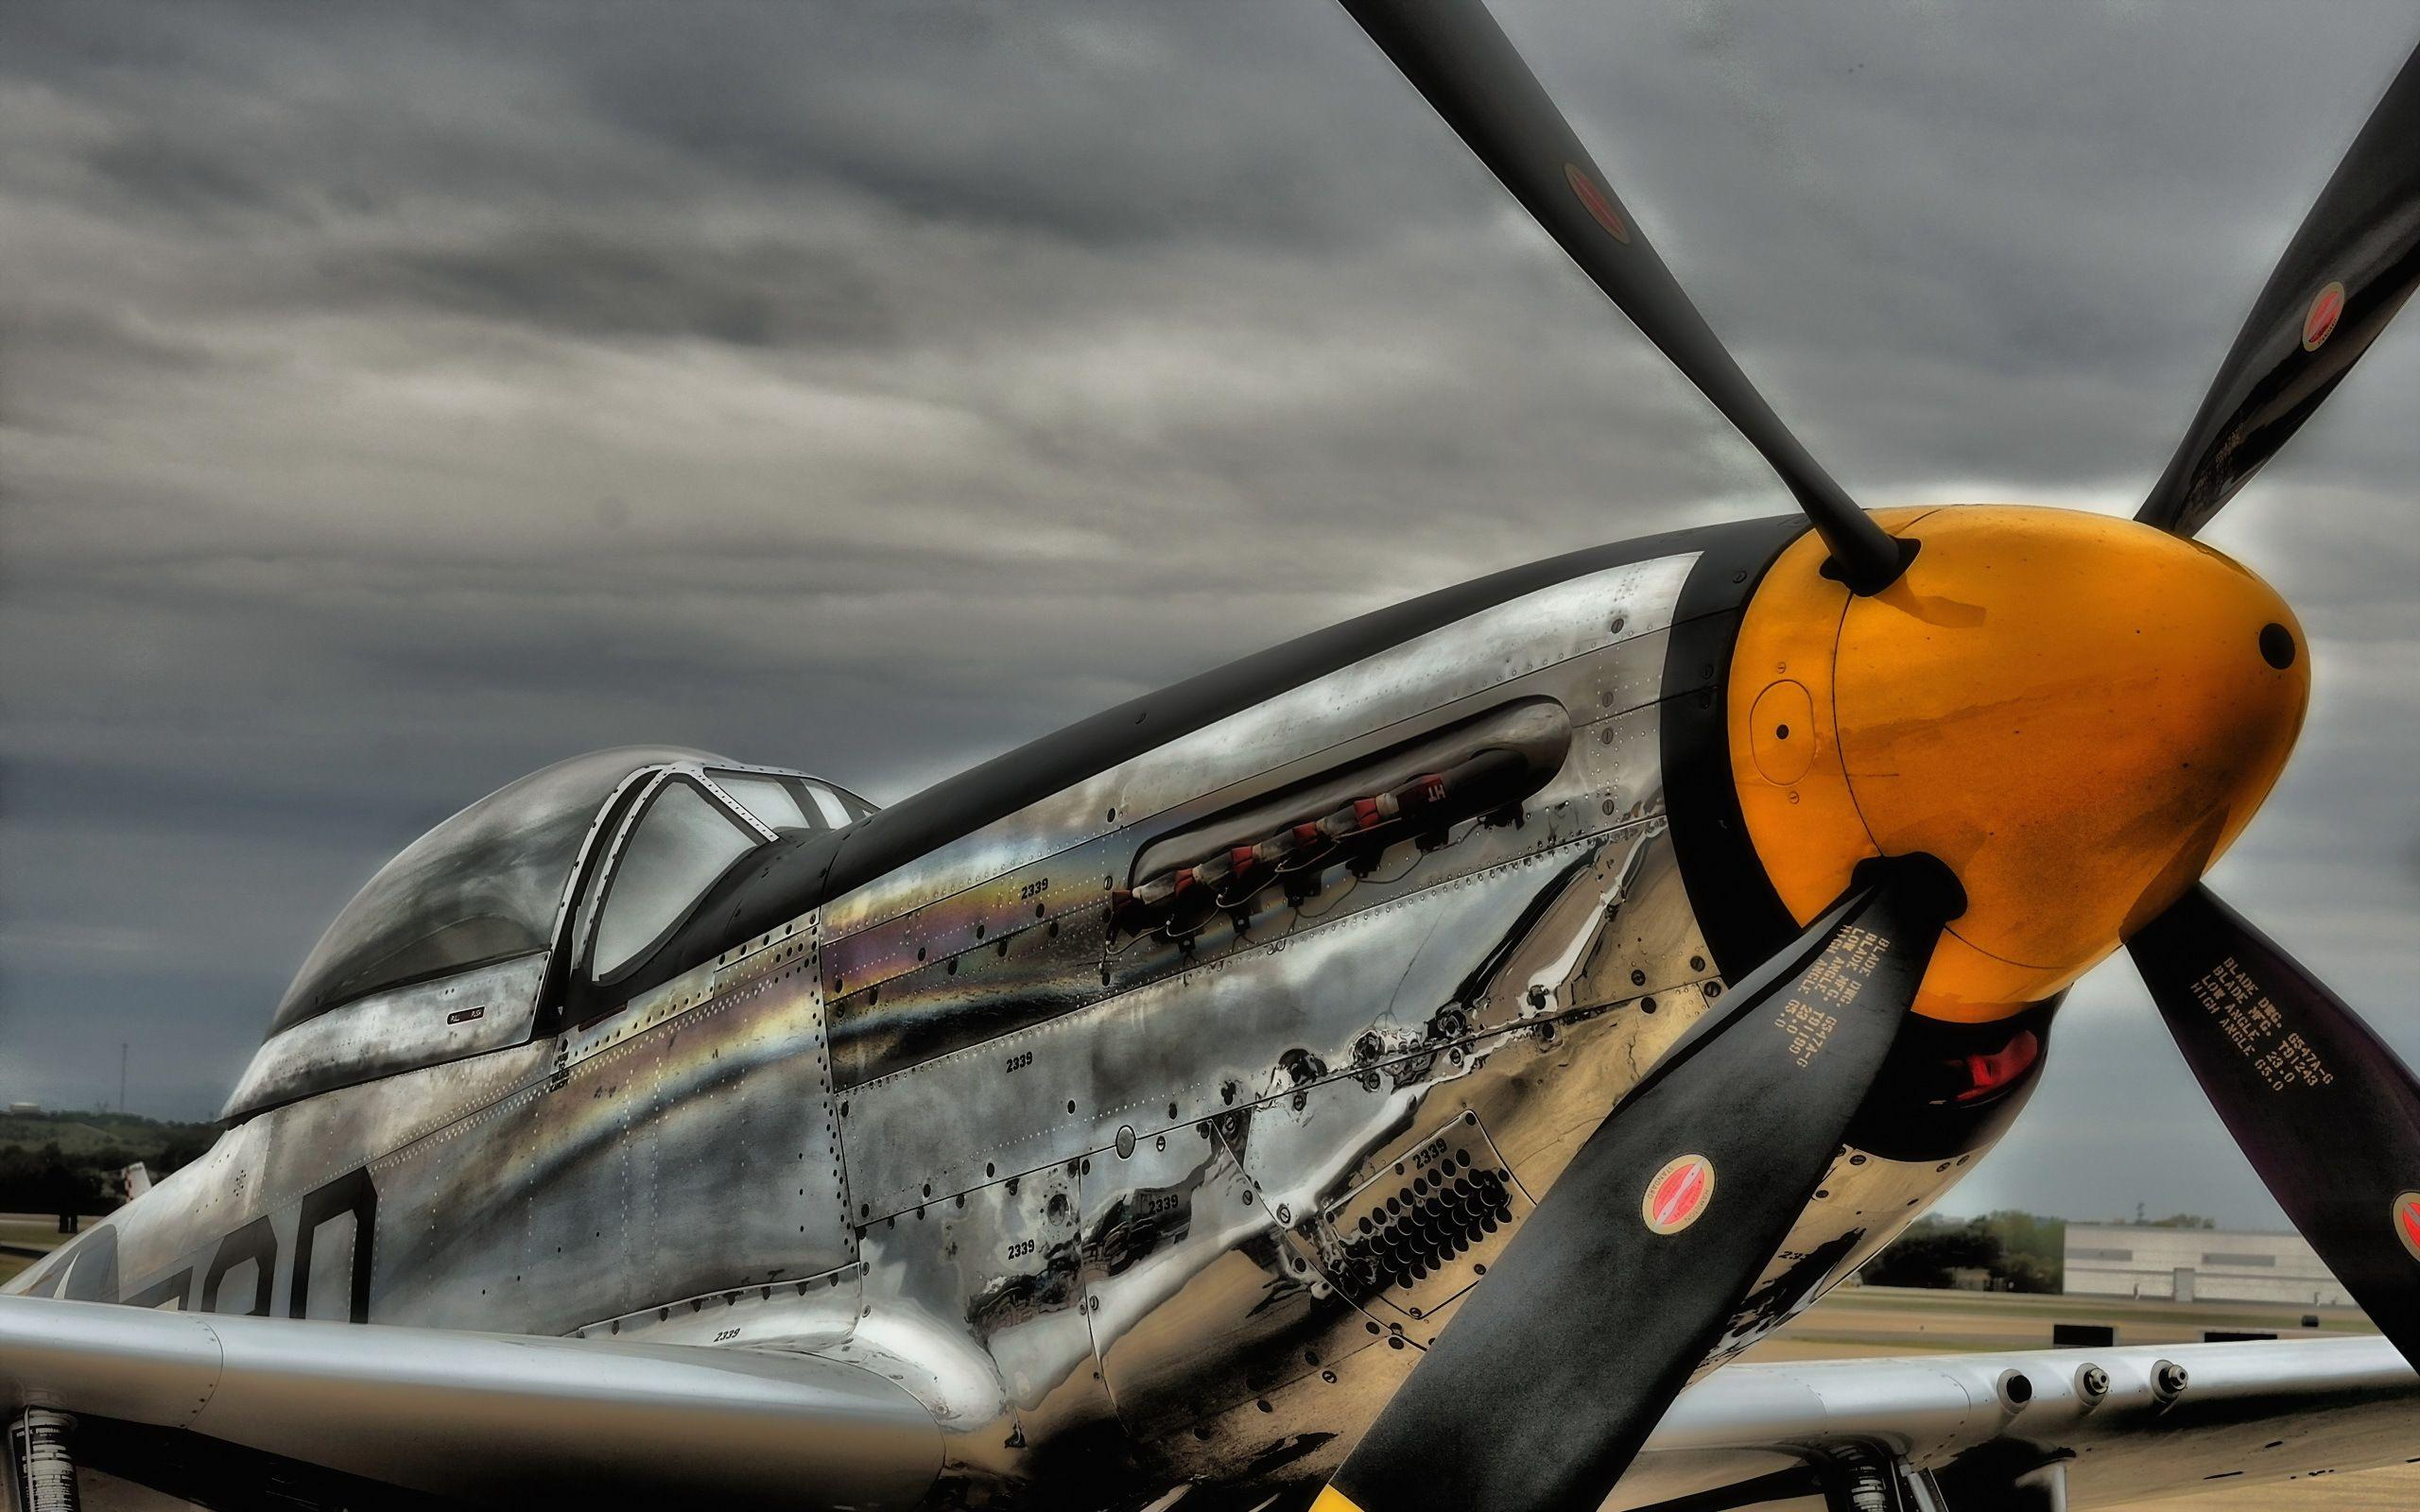 P 51 Mustang Wallpaper P-51 Wallpapers - Wall...